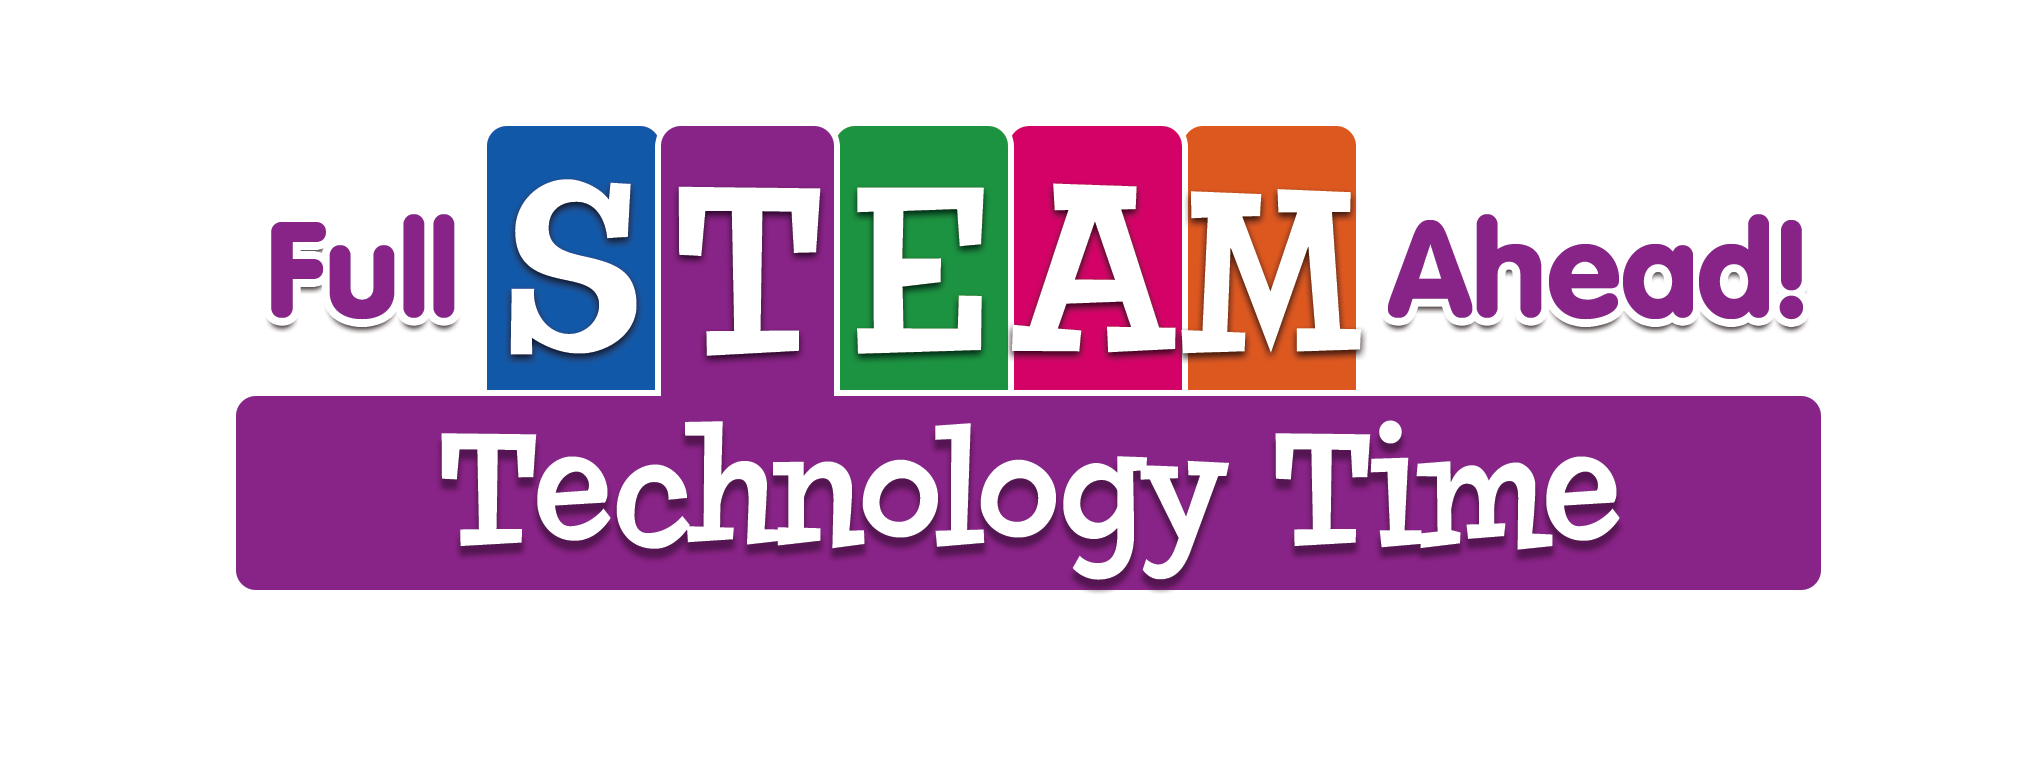 Full-STEAM-Ahead_tech_LOGO